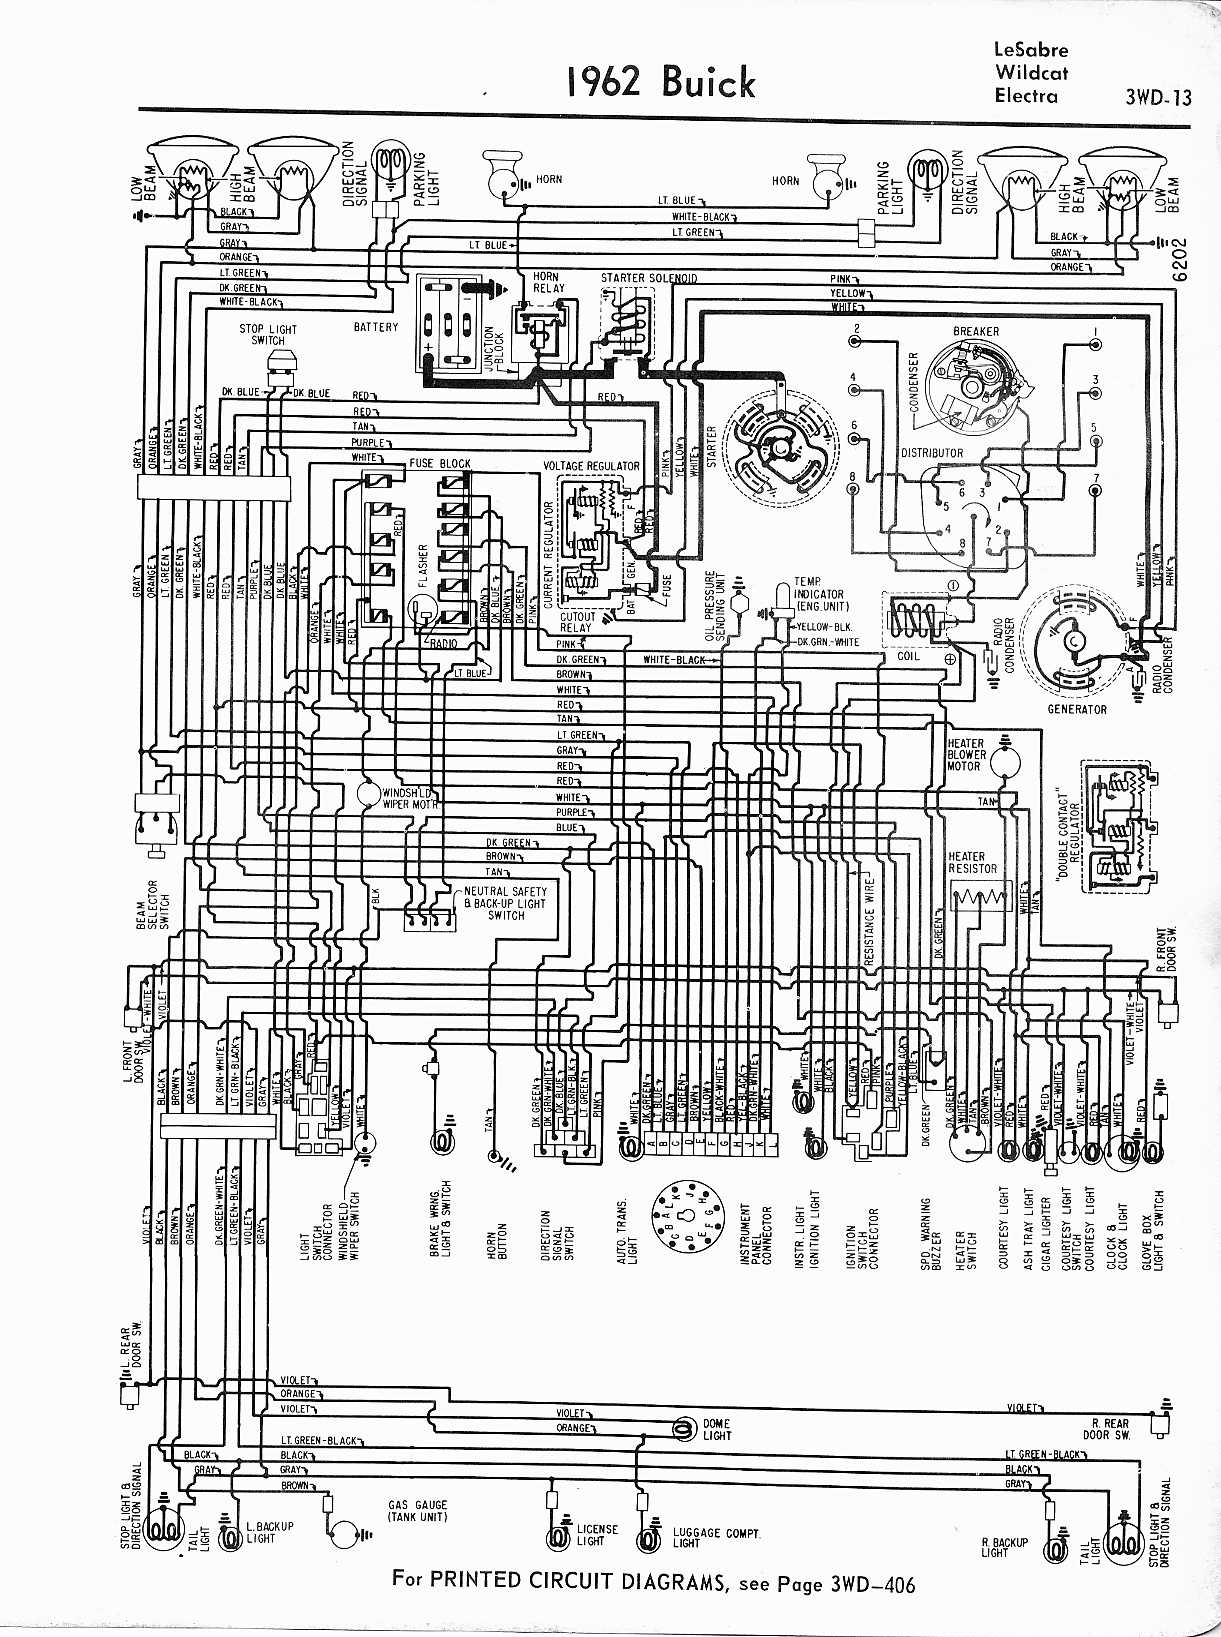 Engine Wiring Diagram 1968 Buick Skylark Will Be A 72 Lemans Diagrams 1957 1965 Rh Oldcarmanualproject Com 1970 1972